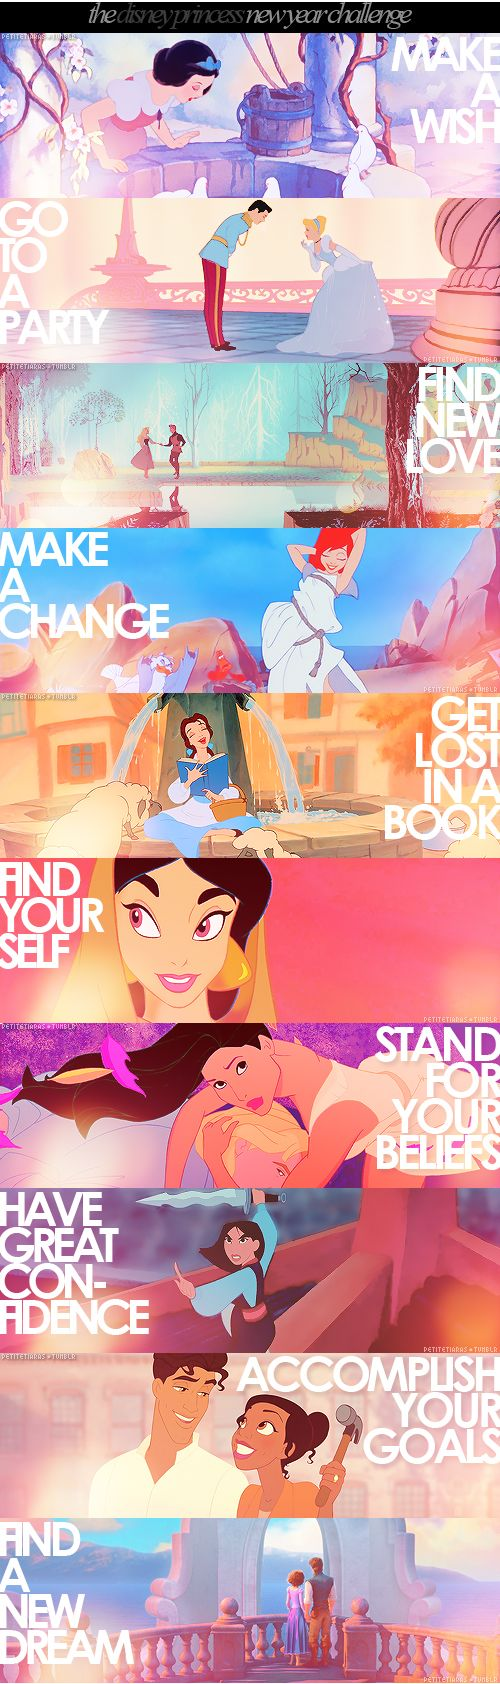 The Disney Princess New Year Challenge